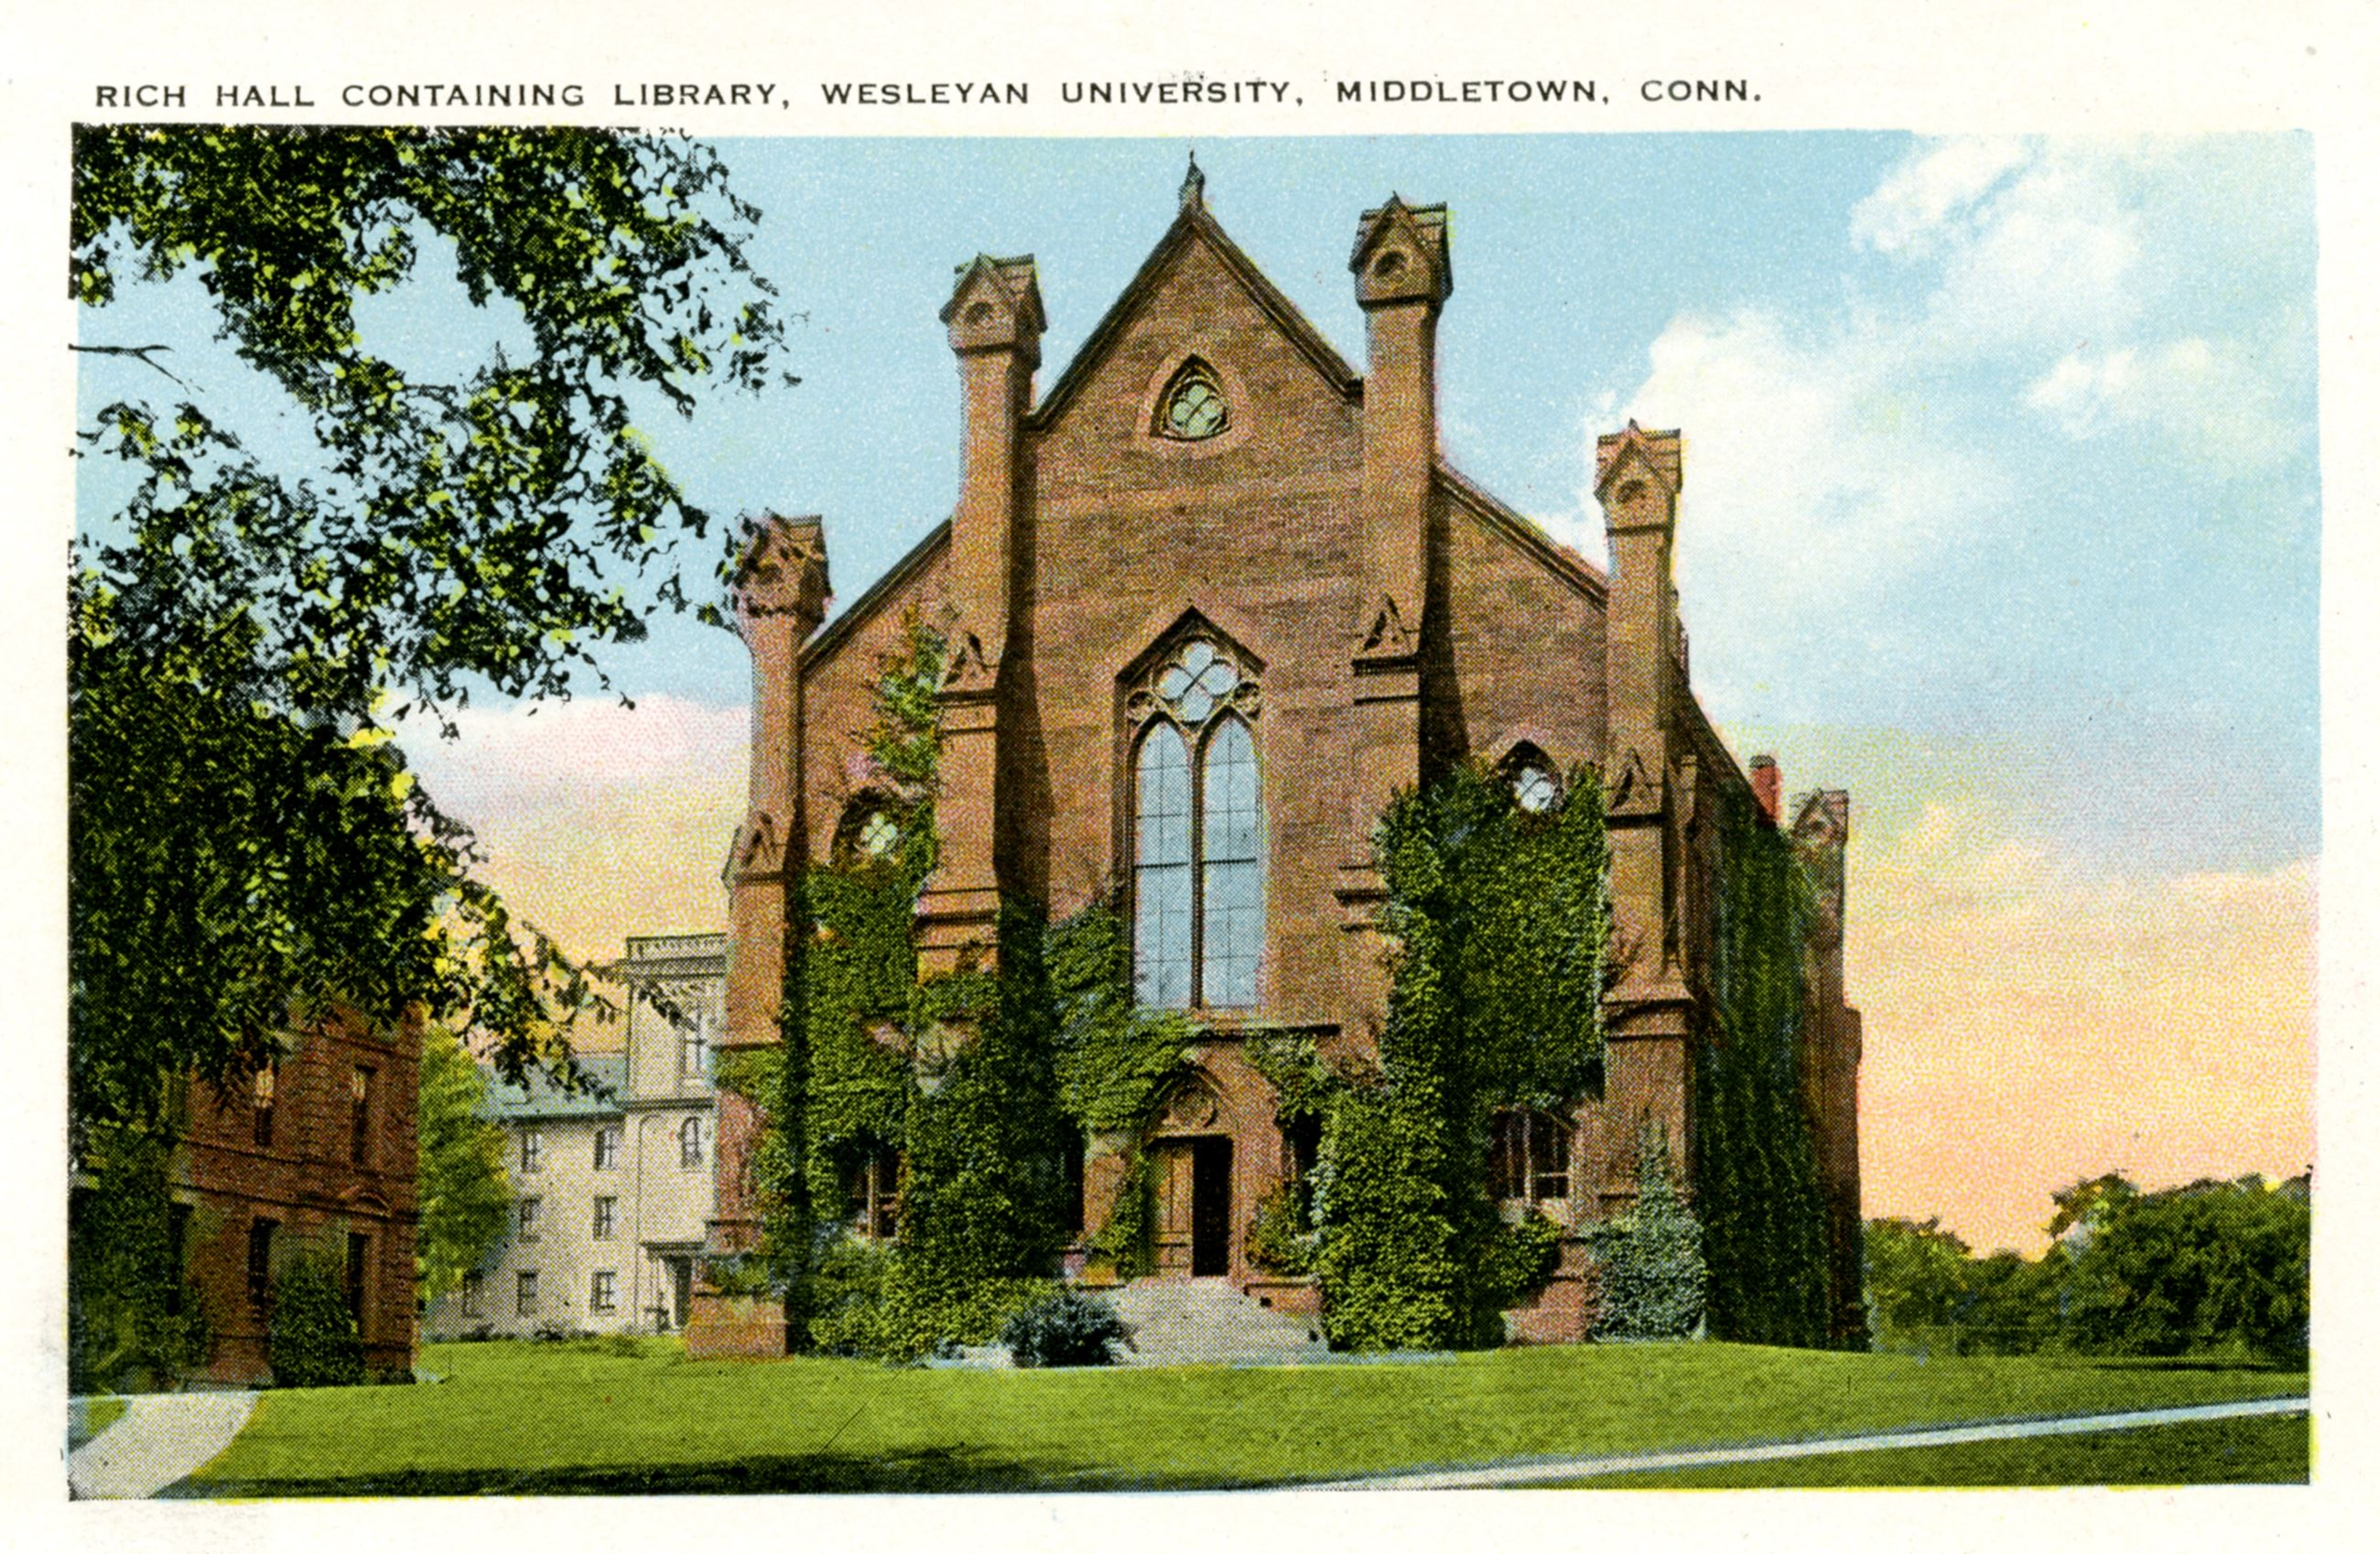 Historical Image of Rich Hall, Wesleyan University